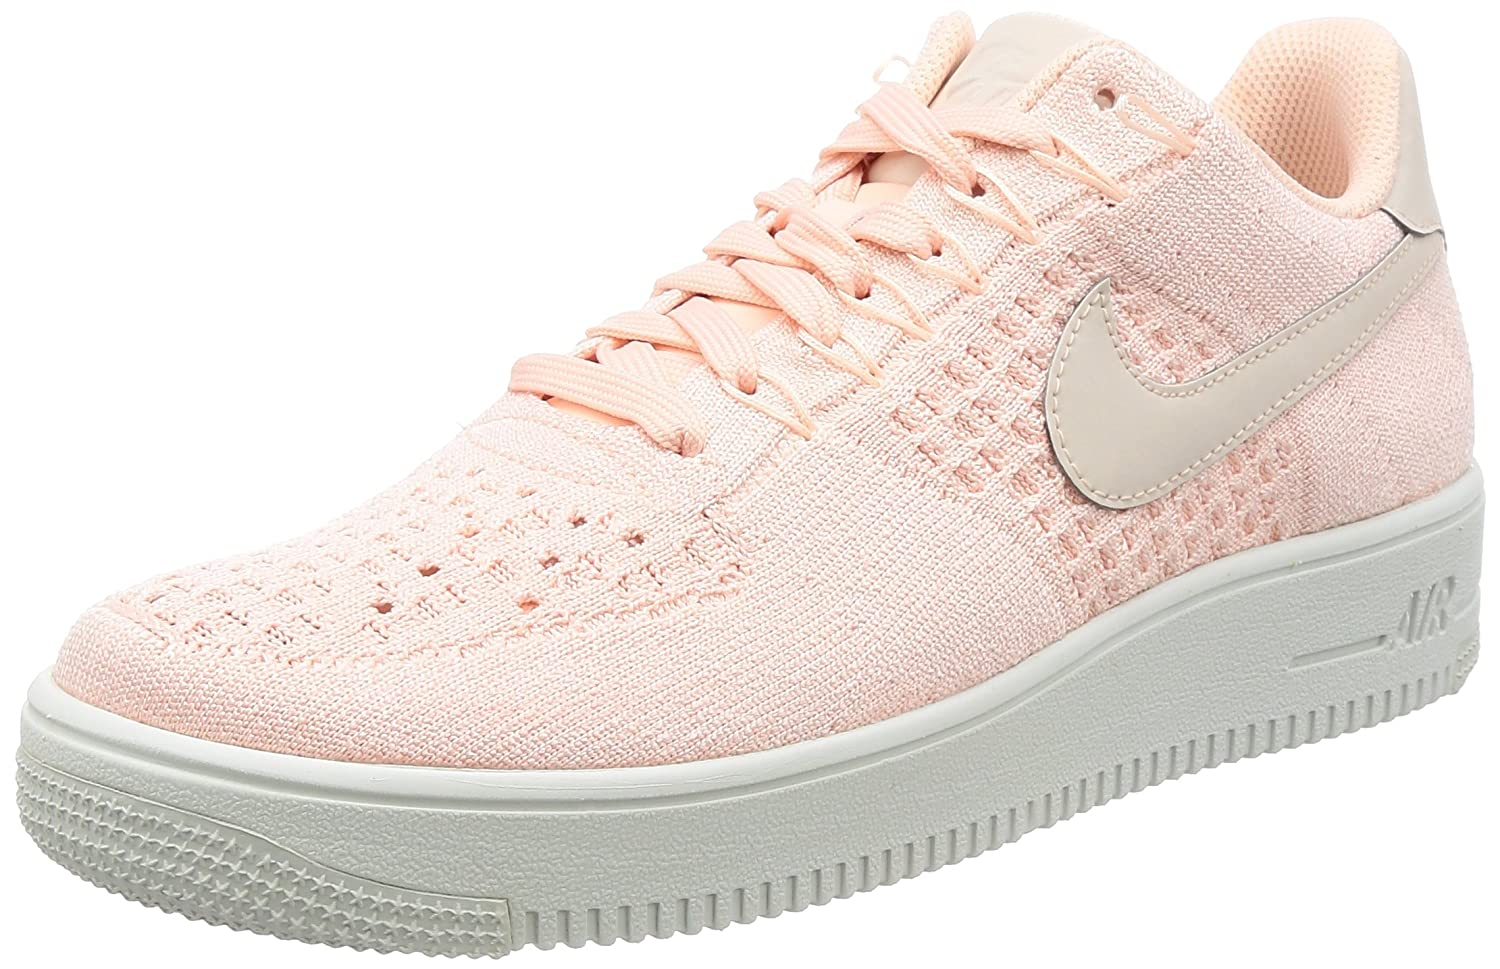 new arrival 26a42 d727f Nike Air Force 1 Ultra Flyknit Low Mens Trainers: Amazon.co ...